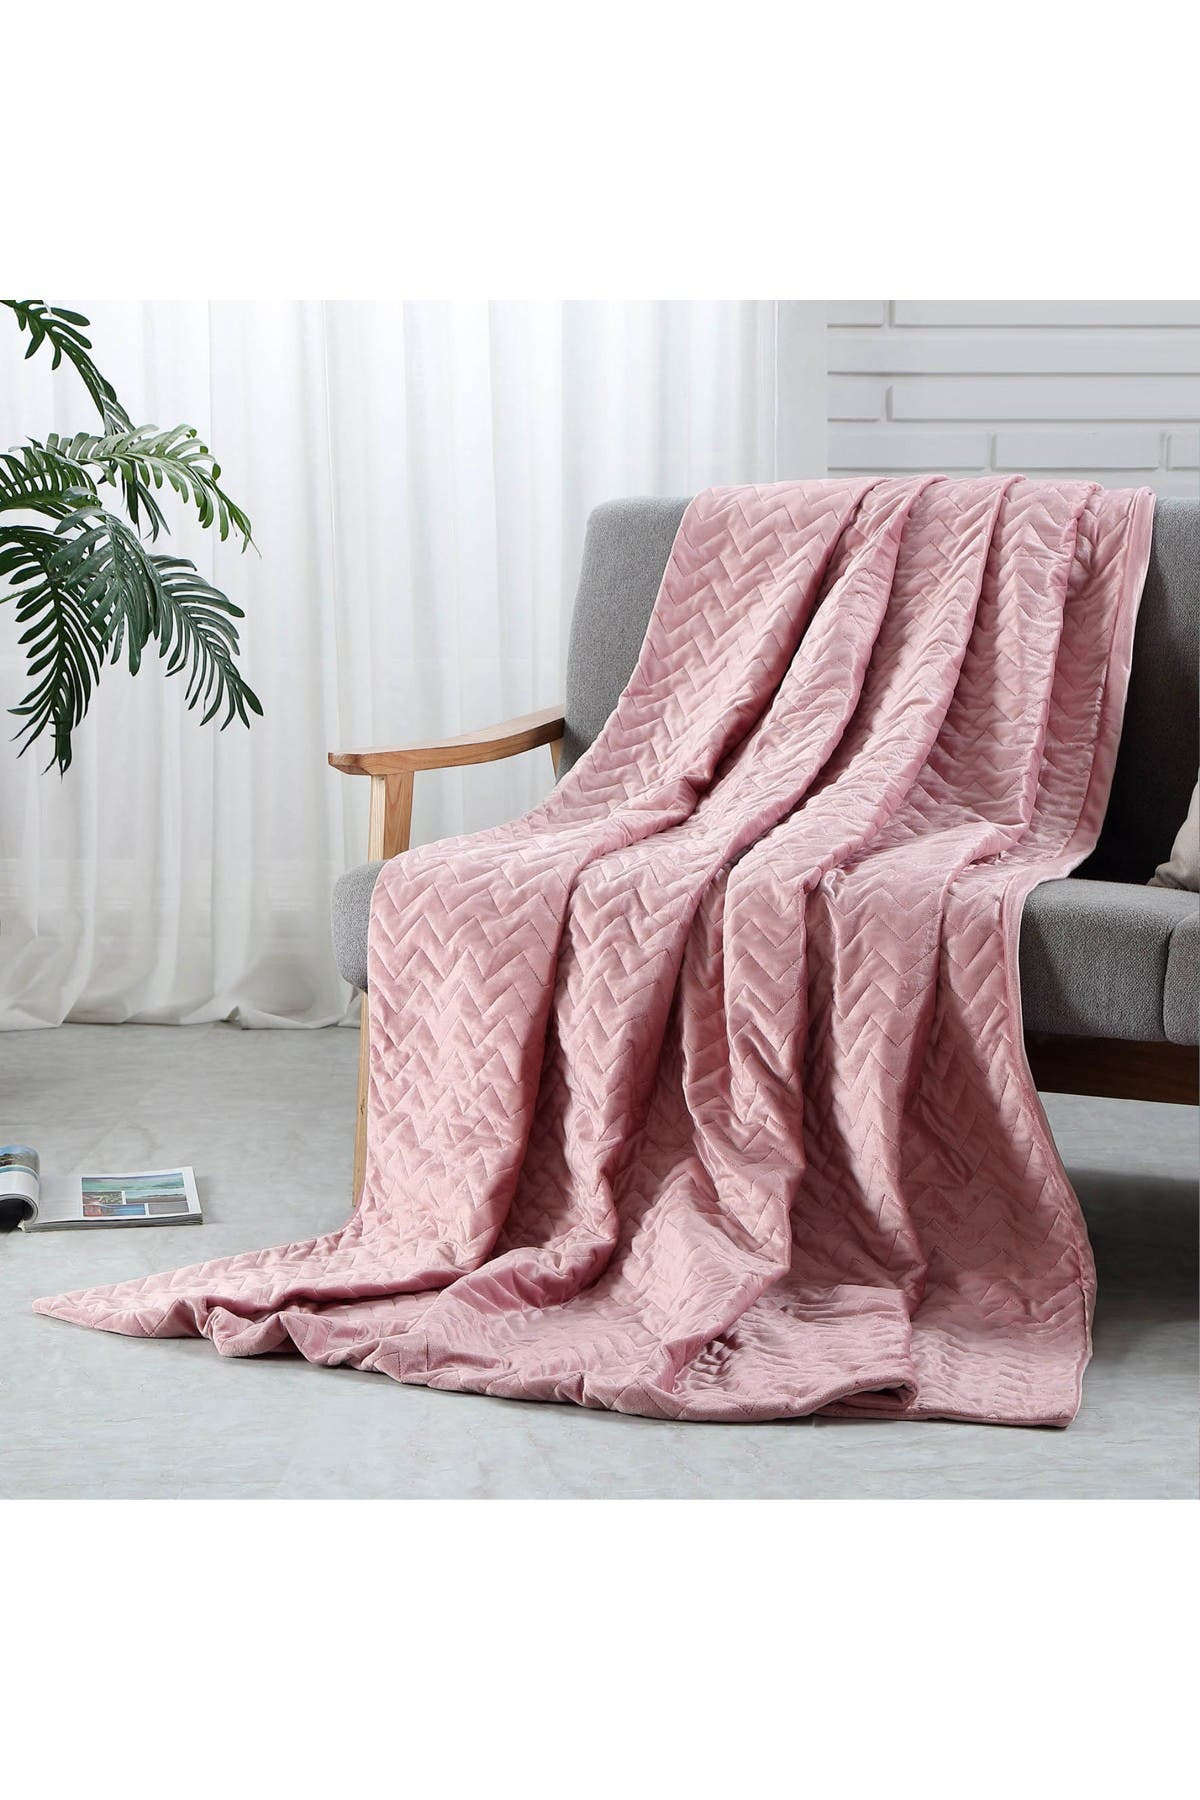 """Image of Inspired Home Cozy Tyme Eshe Weighted Blanket 15lbs 48"""" x 72"""" - Blush"""